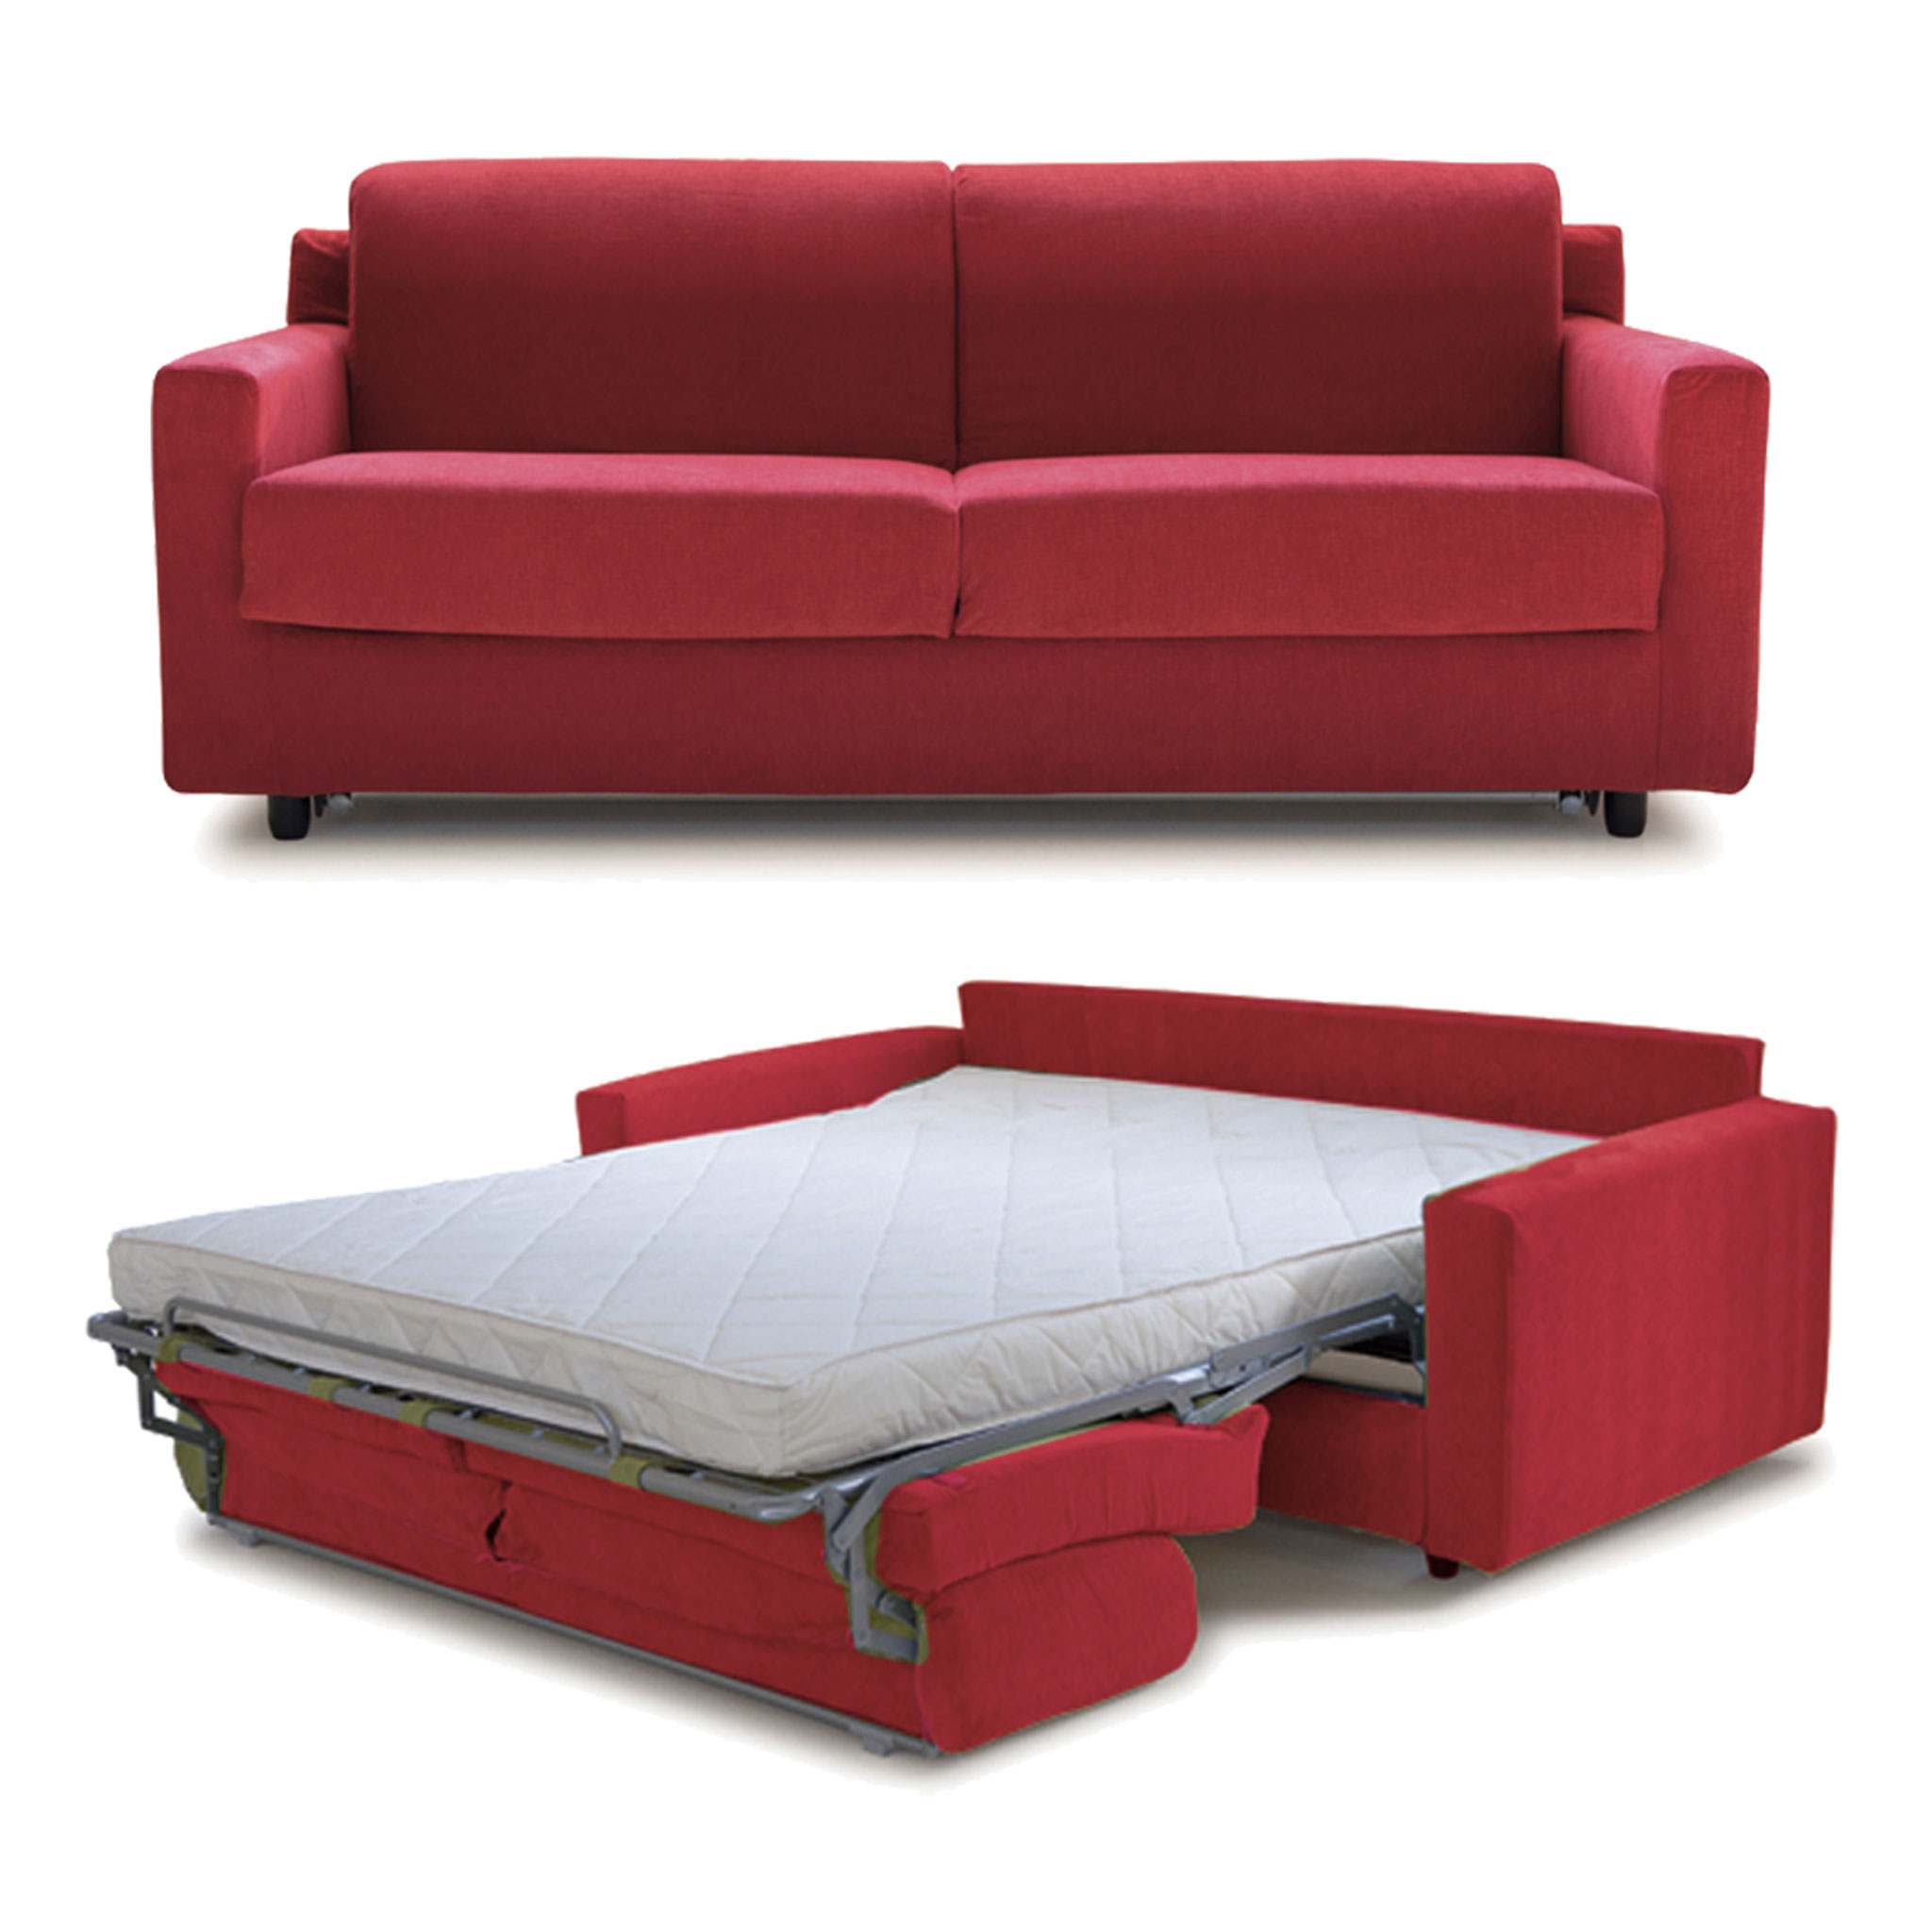 Canap convertible pas cher royal sofa id e de canap for Canape 3 places convertible pas cher